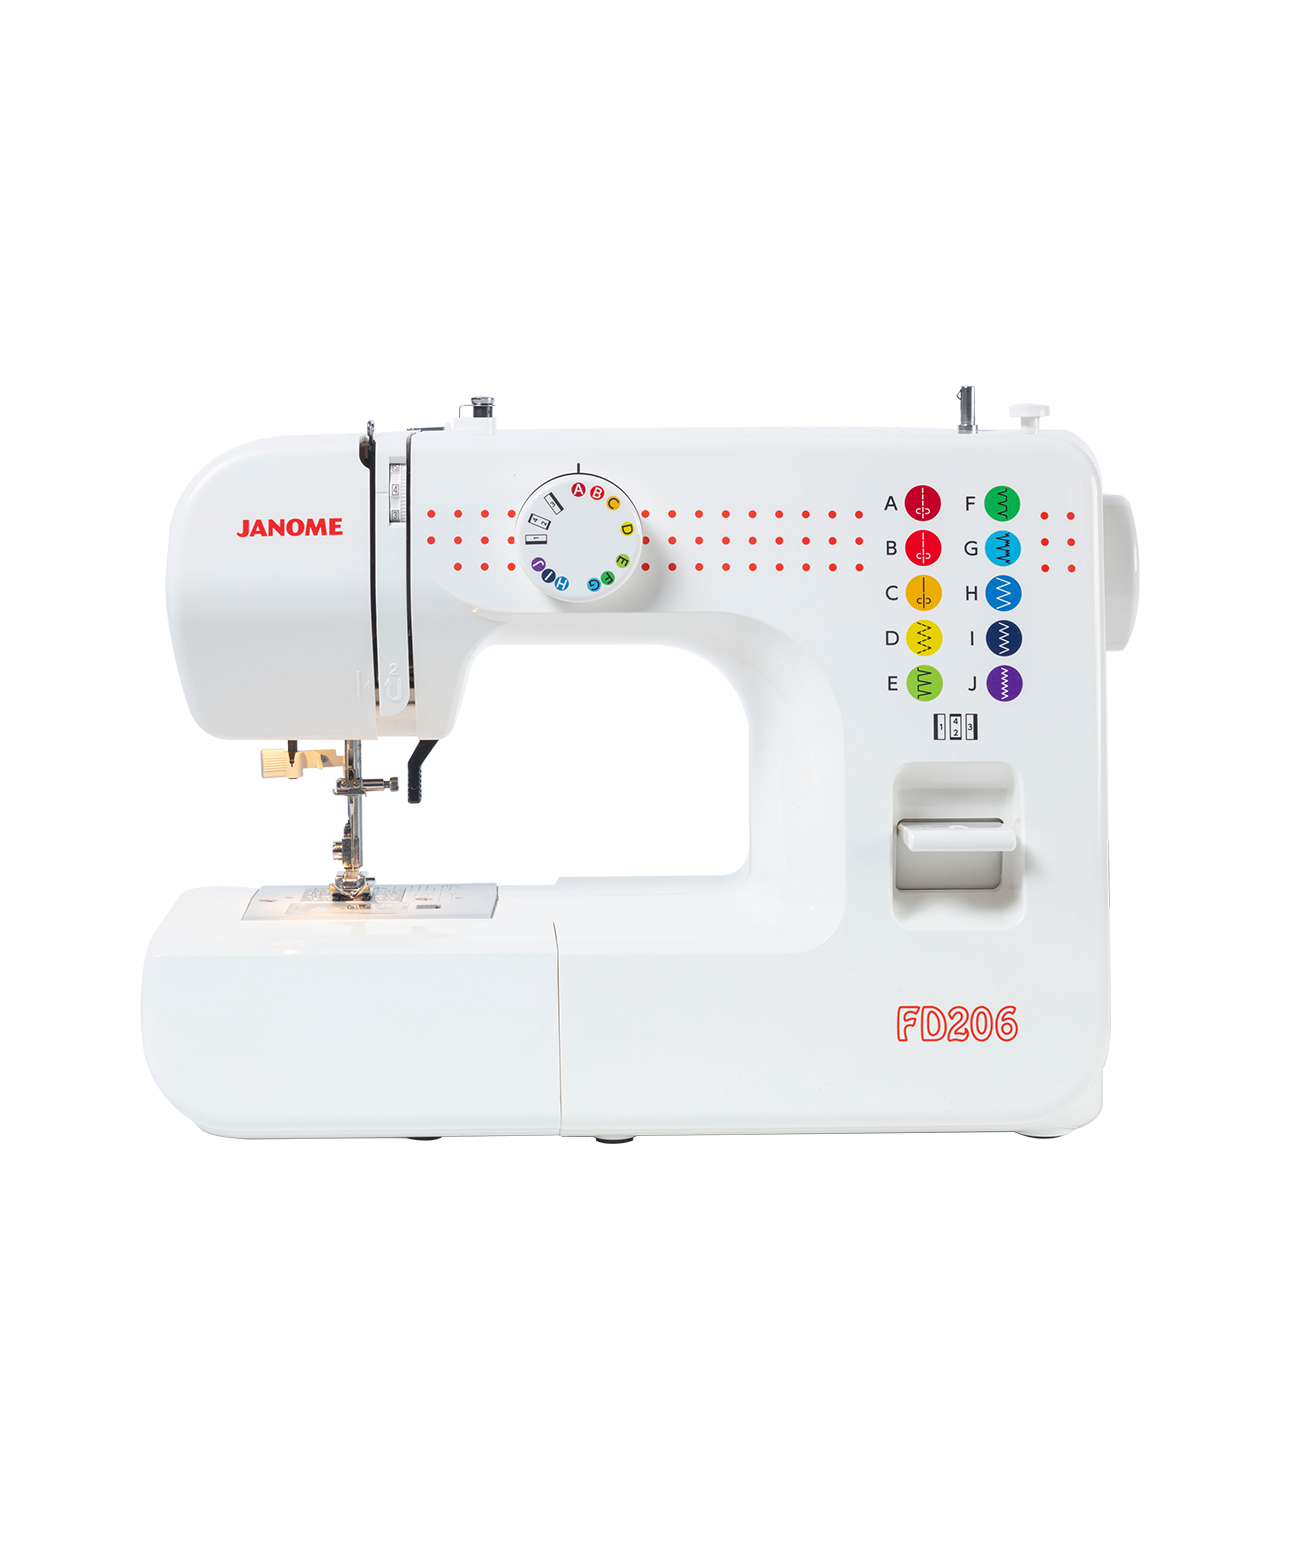 Janome FD206 Mechanical Sewer Sewing Machine Basic Beginner Spotlight Hobbysew Special Discount Cheap Easy Understand Lessons Features Straight Stitch Zig Zag Feet